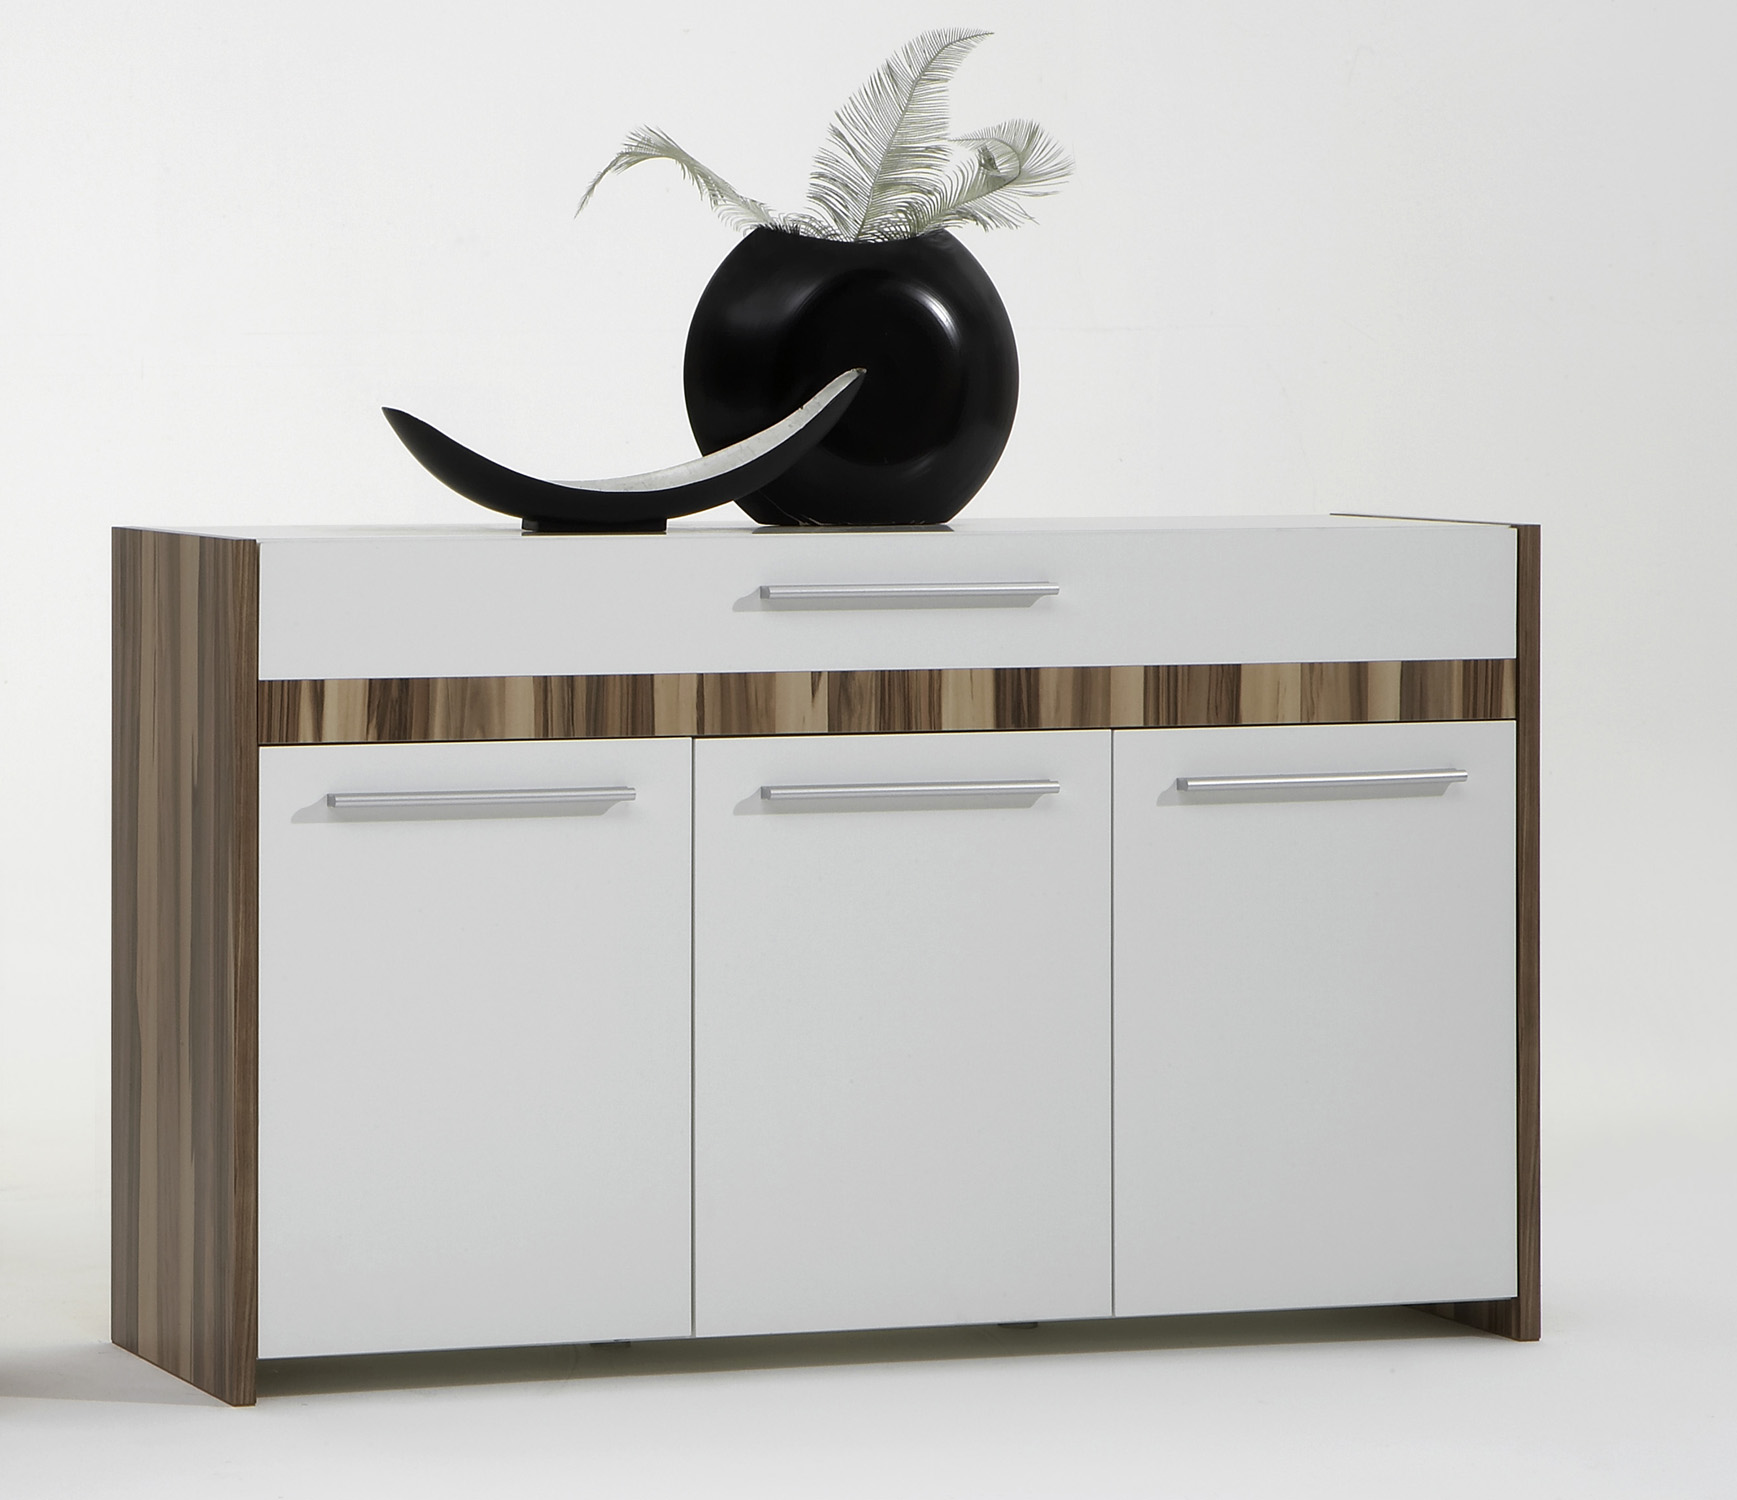 kommode sideboard lowboard aktenschrank schubladenkommode. Black Bedroom Furniture Sets. Home Design Ideas